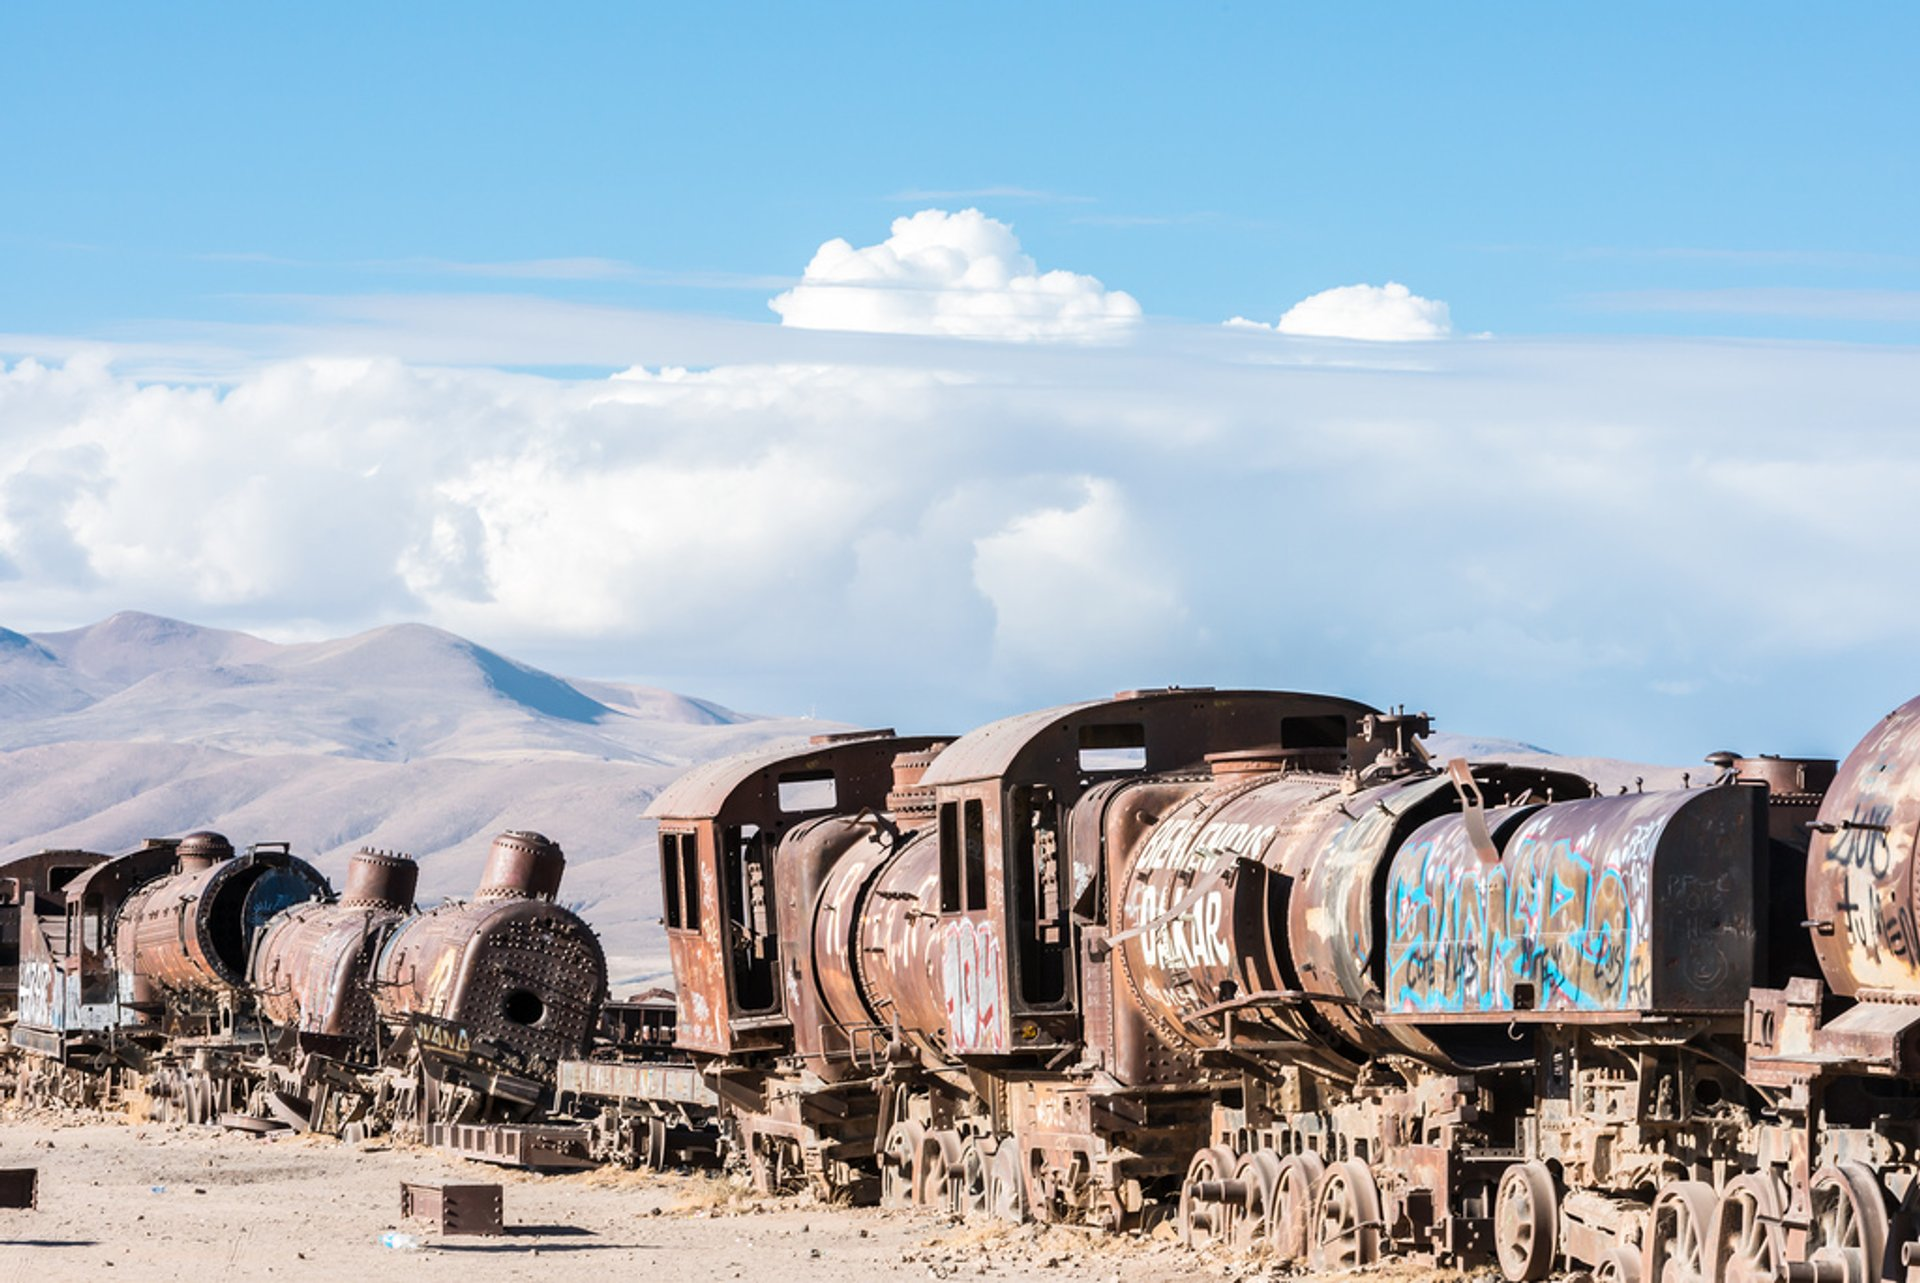 Train Cemetery in Bolivia 2019 - Best Time